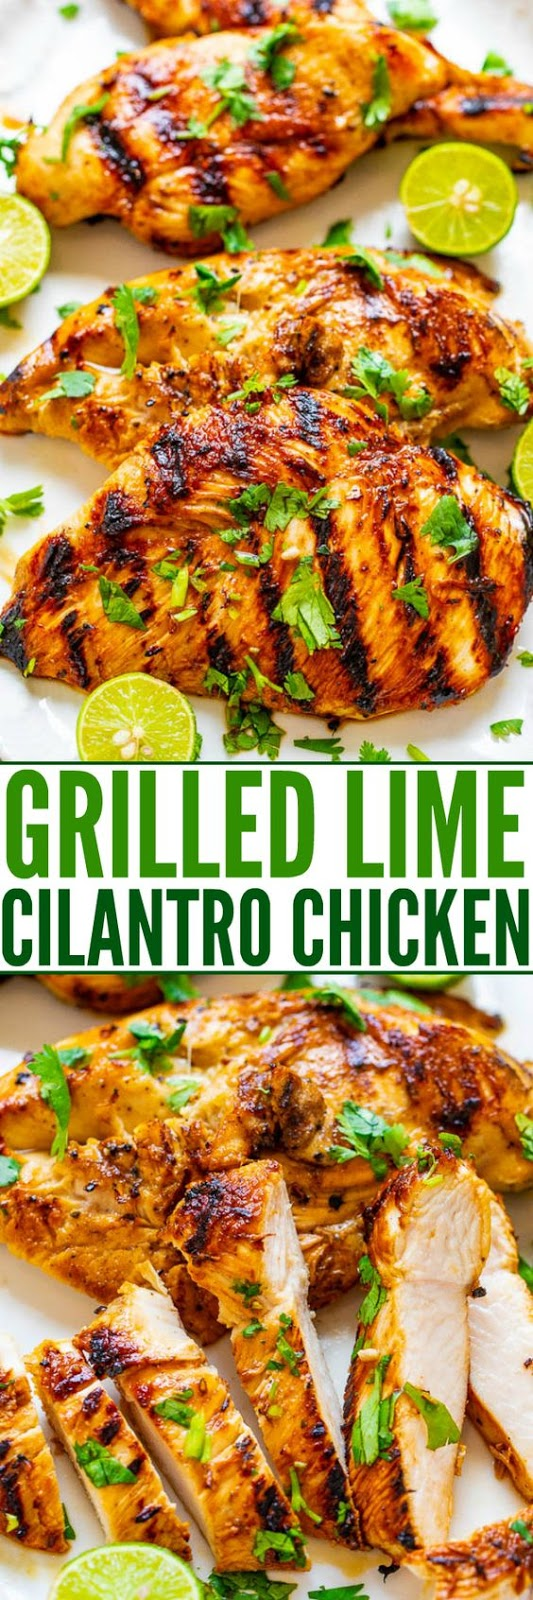 GRILLED LIME CILANTRO CHICKEN